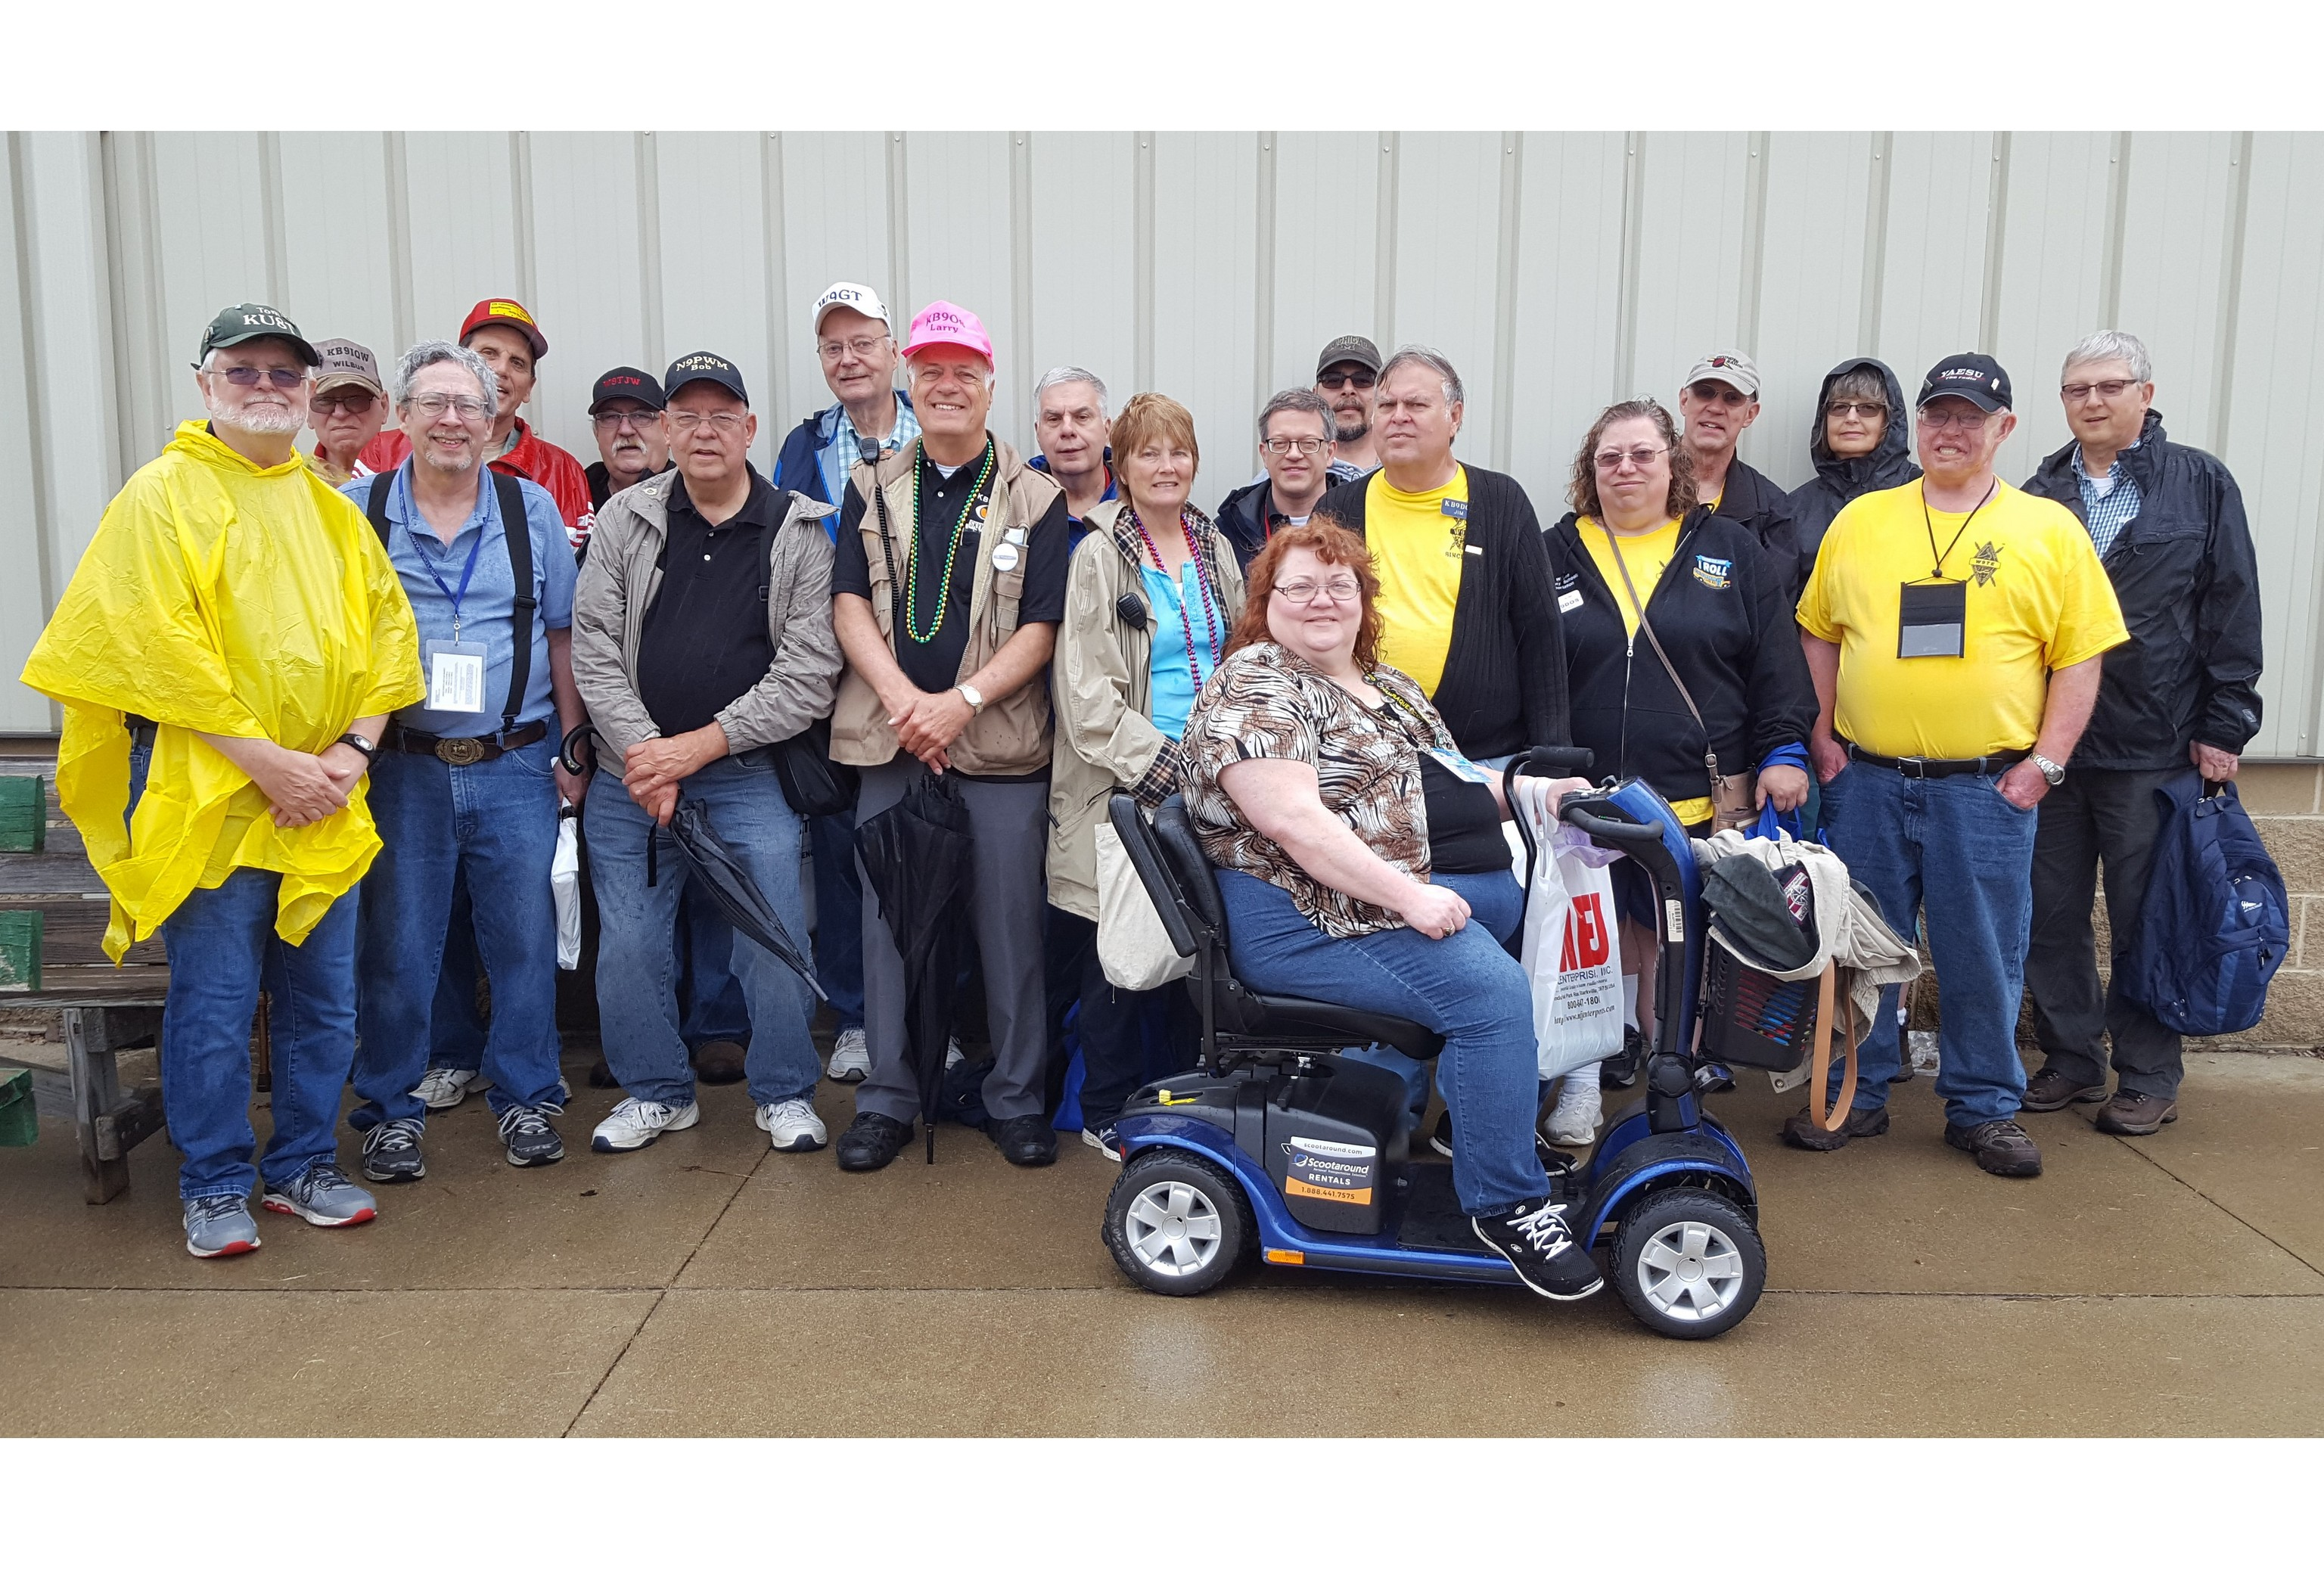 Fort Wayne Radio Club Members at the 2018 Dayton HamVention